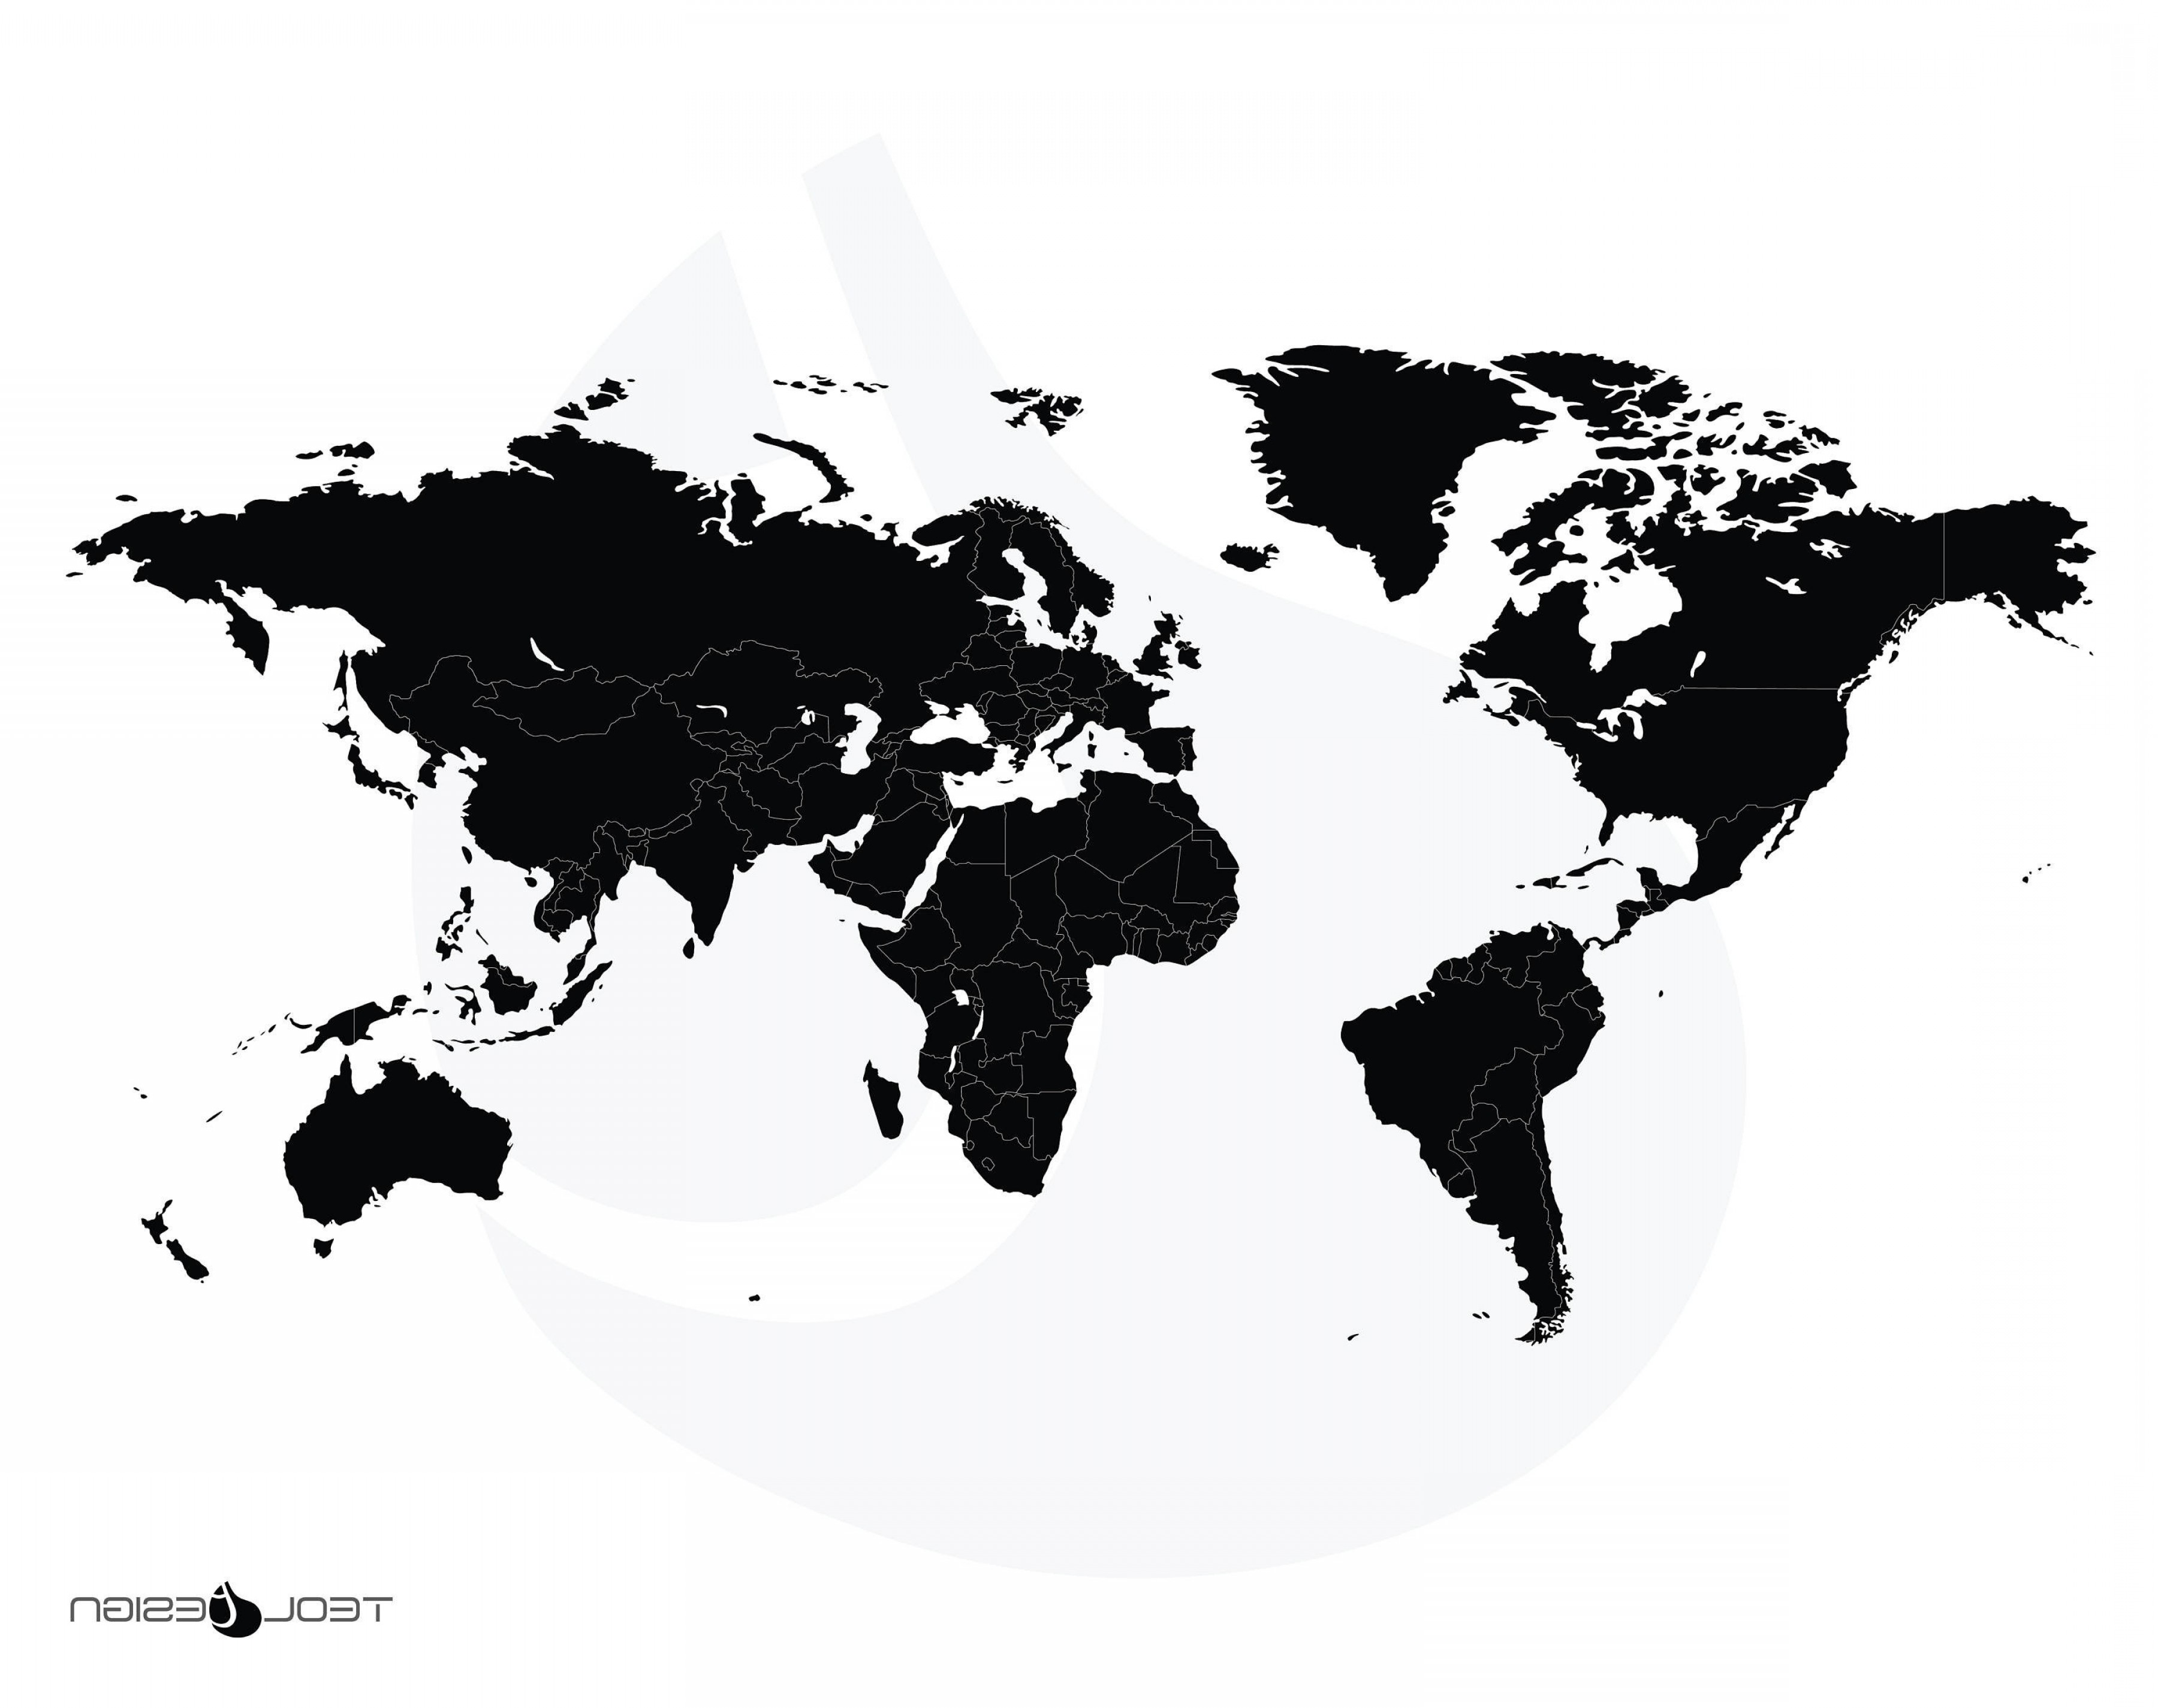 3600x2850 World Map In Vector Graphics Fresh World Map Vector Graphic Best